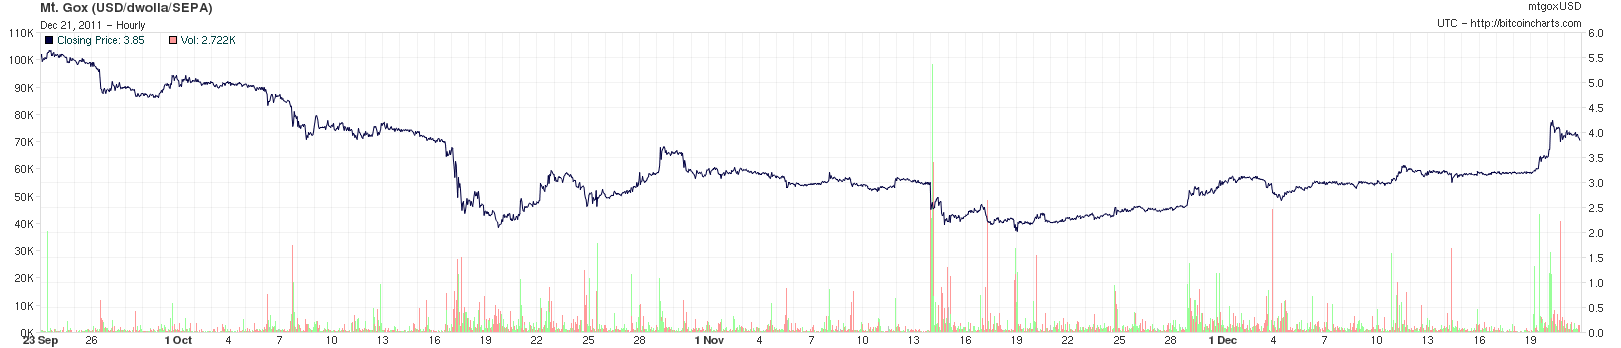 Bitcoint Price Chart 23-09-2011 to 22-12-2011